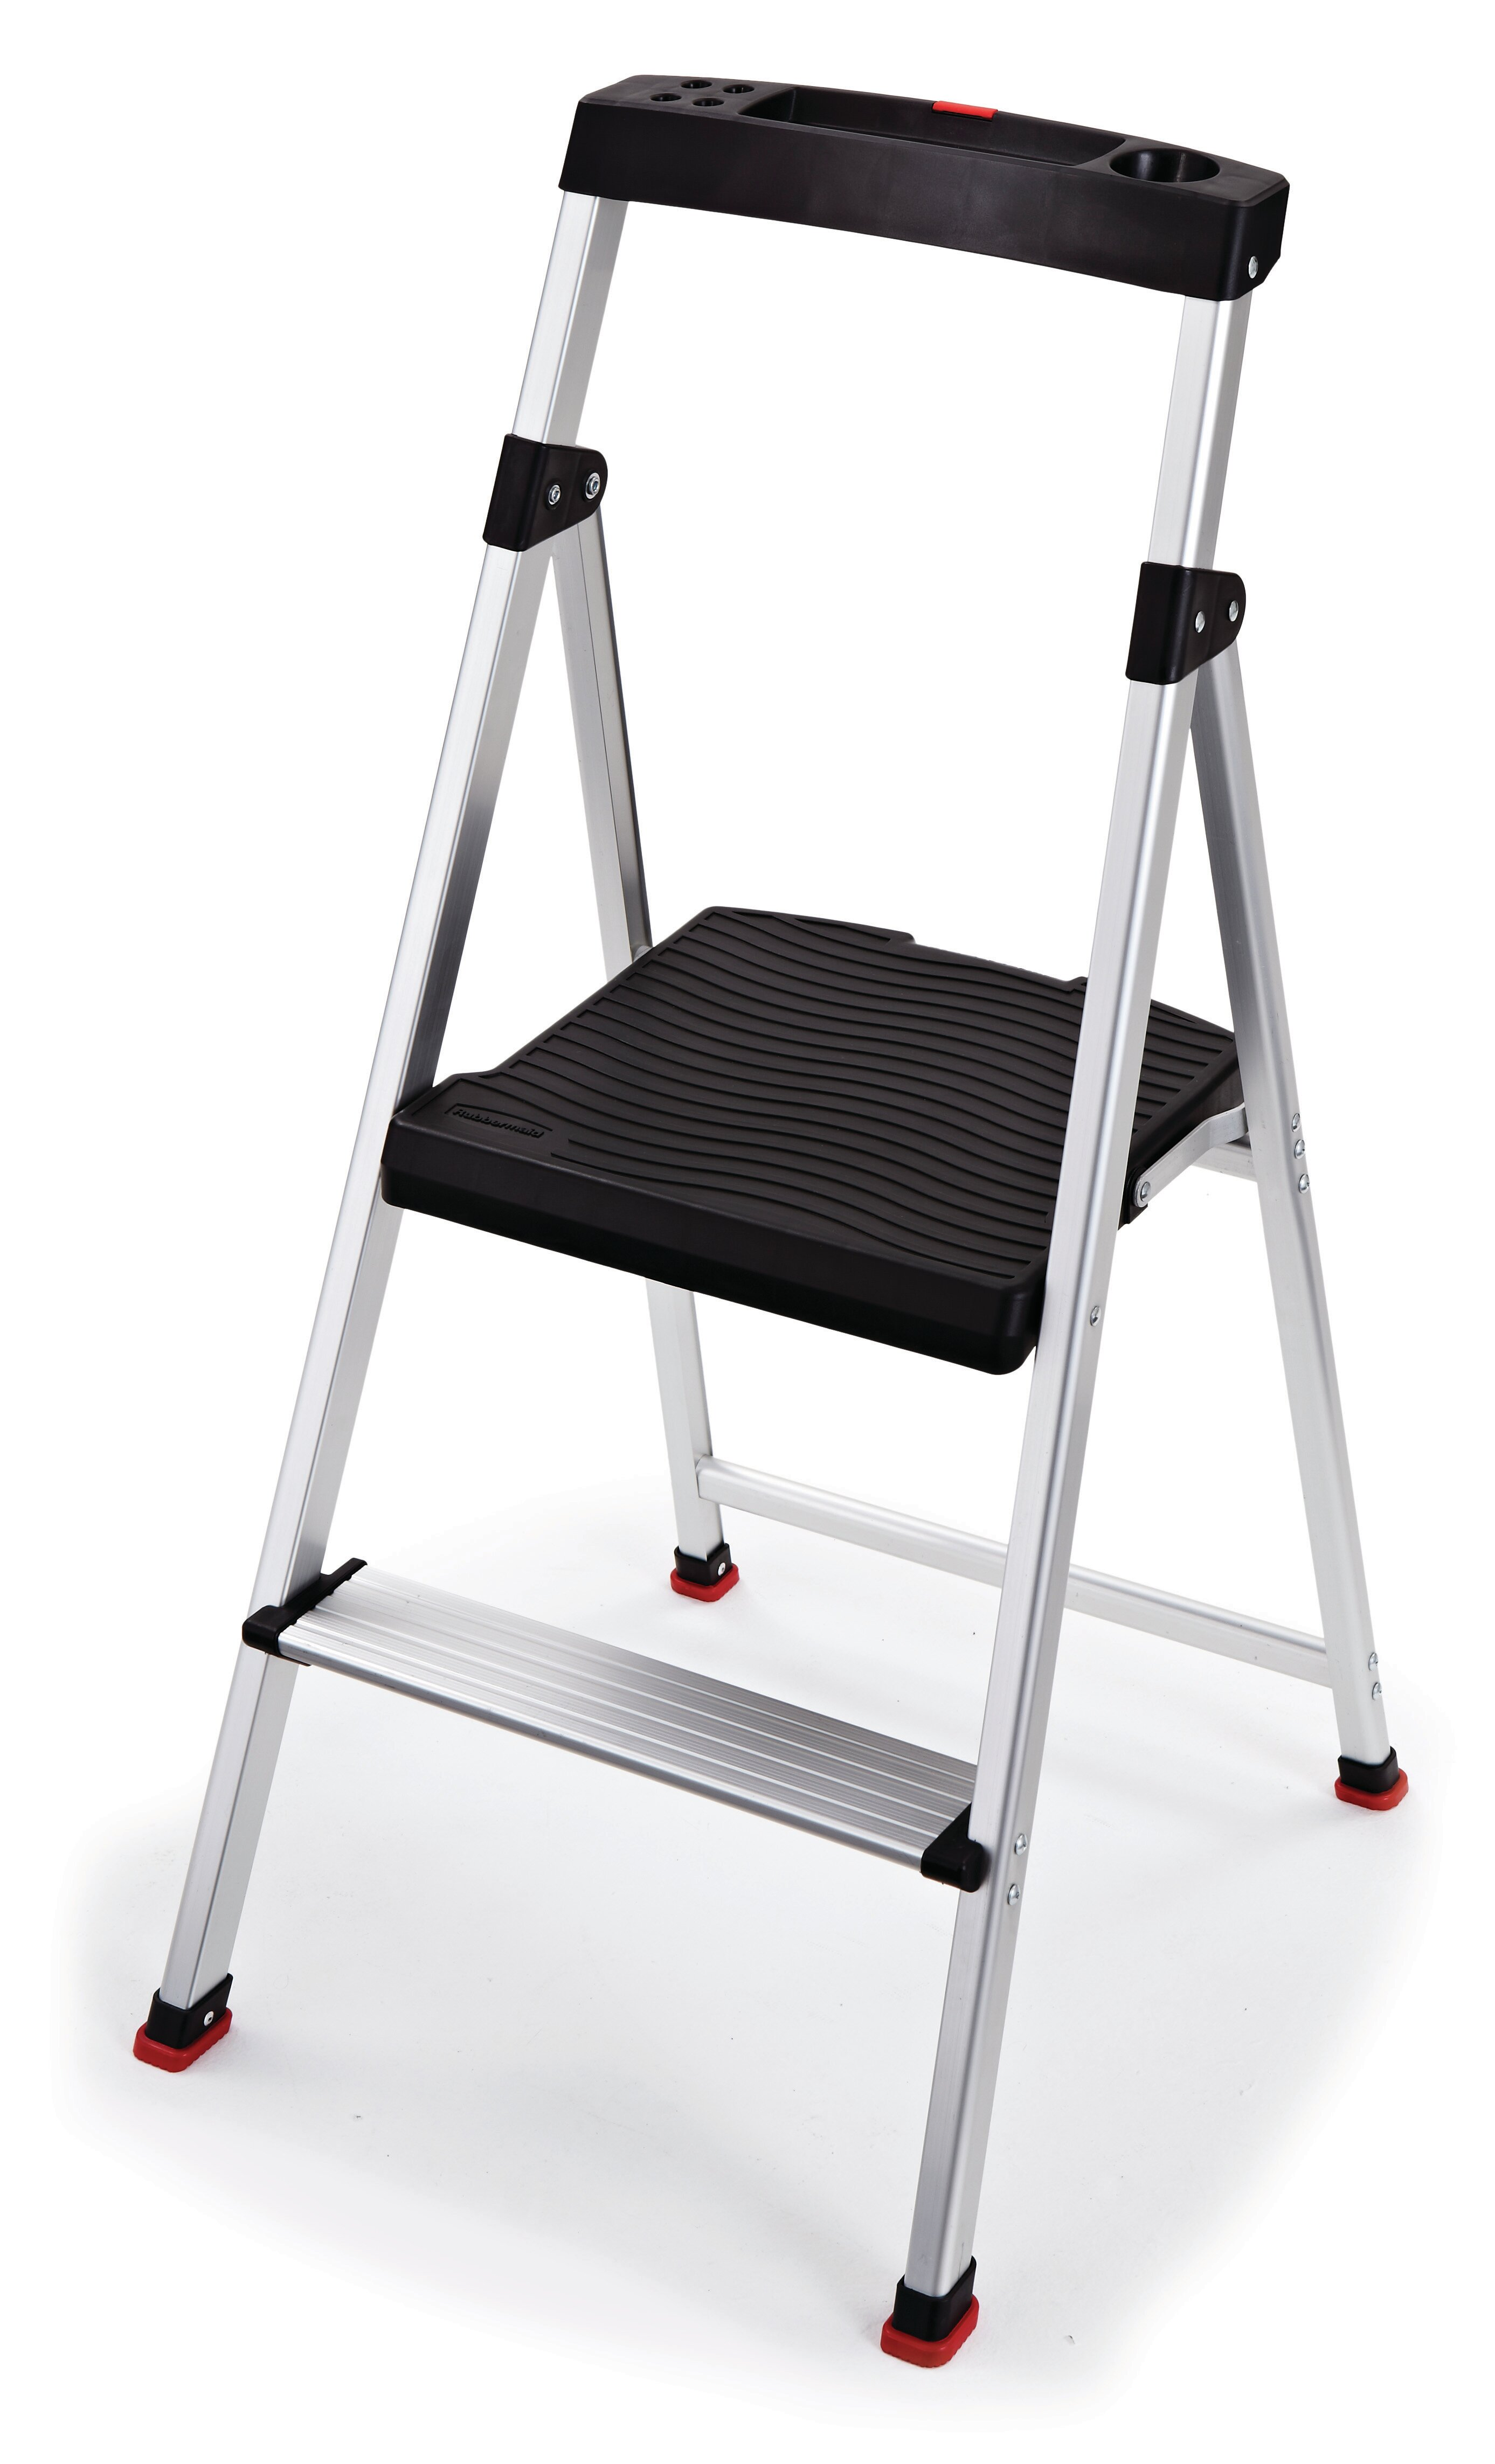 Miraculous 2 Step Aluminum Step Stool With 225 Lb Load Capacity Caraccident5 Cool Chair Designs And Ideas Caraccident5Info